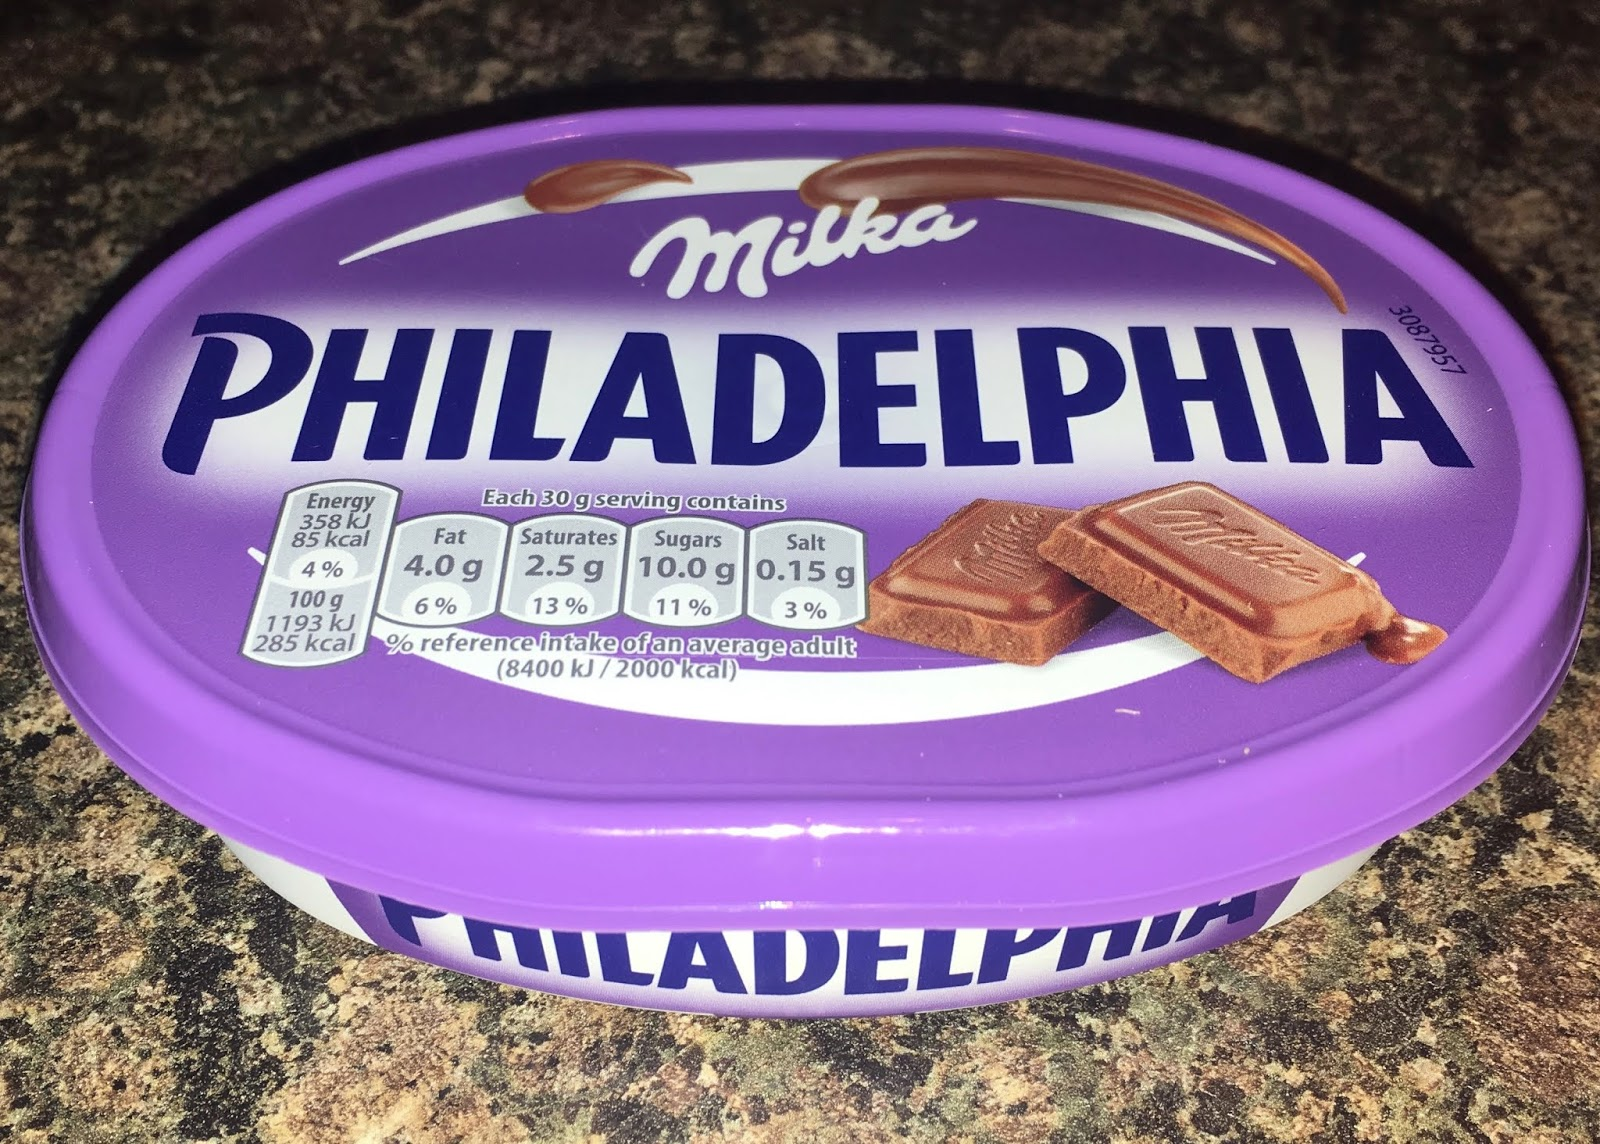 Foodstuff Finds Philadelphia Milka Chocolate Asda By At Cinabar